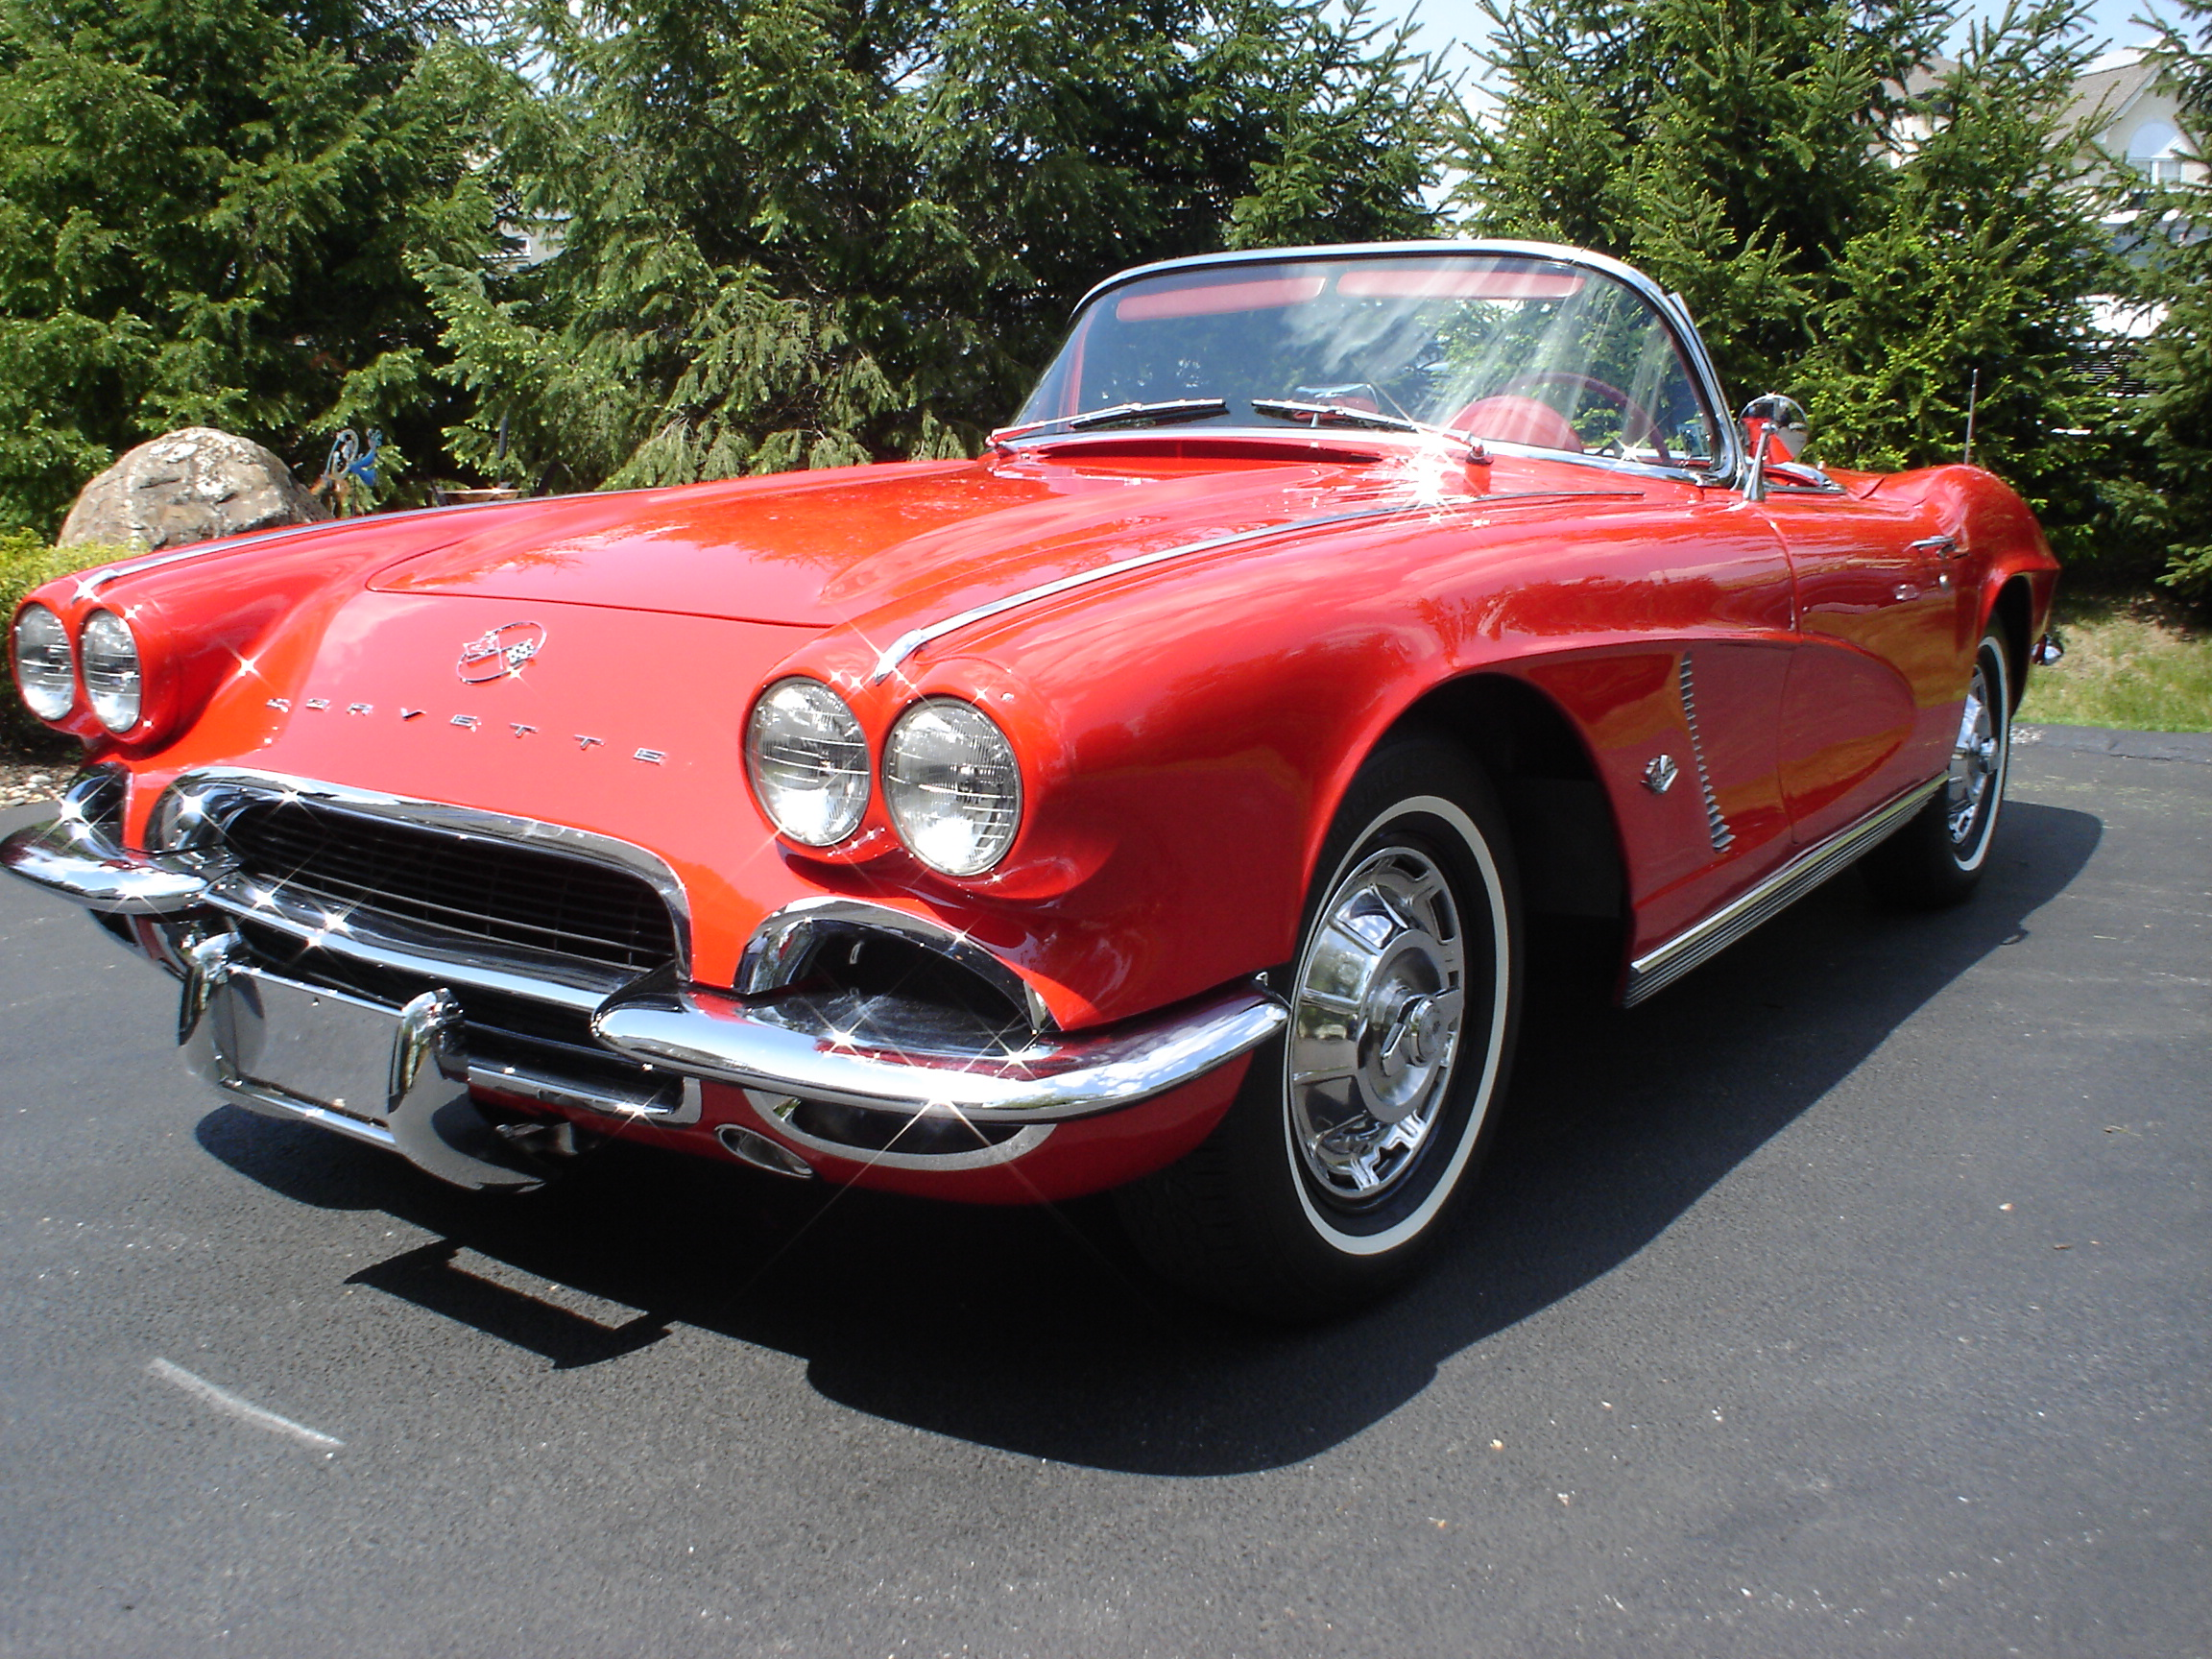 Corvette For Sale >> 62 Corvette | JJV Customs